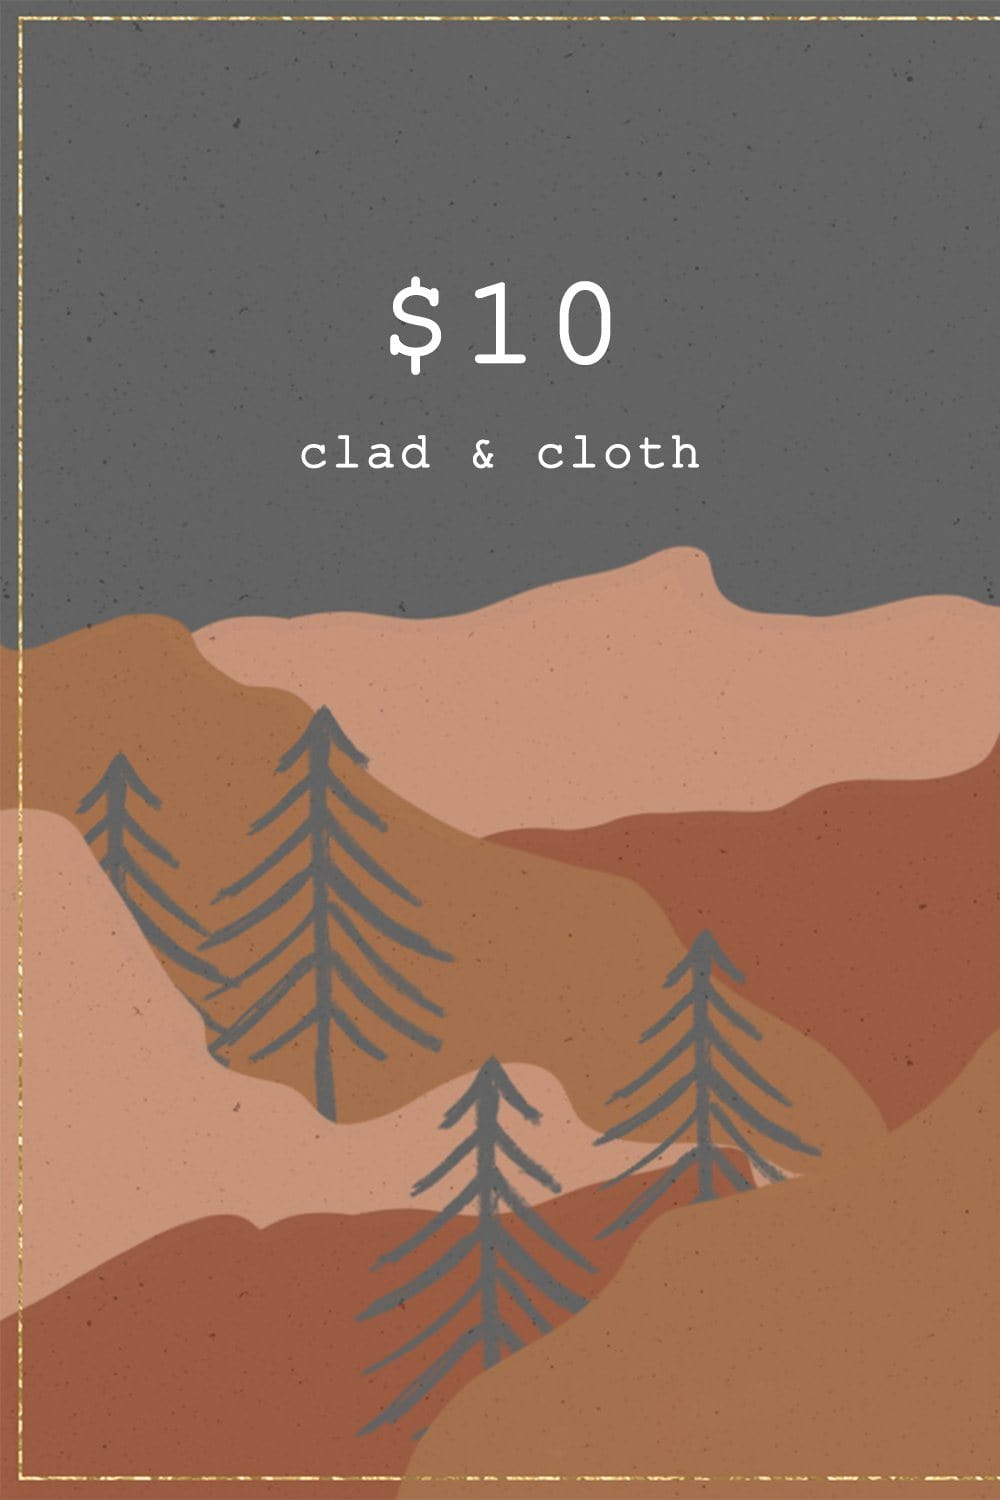 Clad and Cloth, CLAD & CLOTH Gift Card - $10, Clad & Cloth, Gift Card.